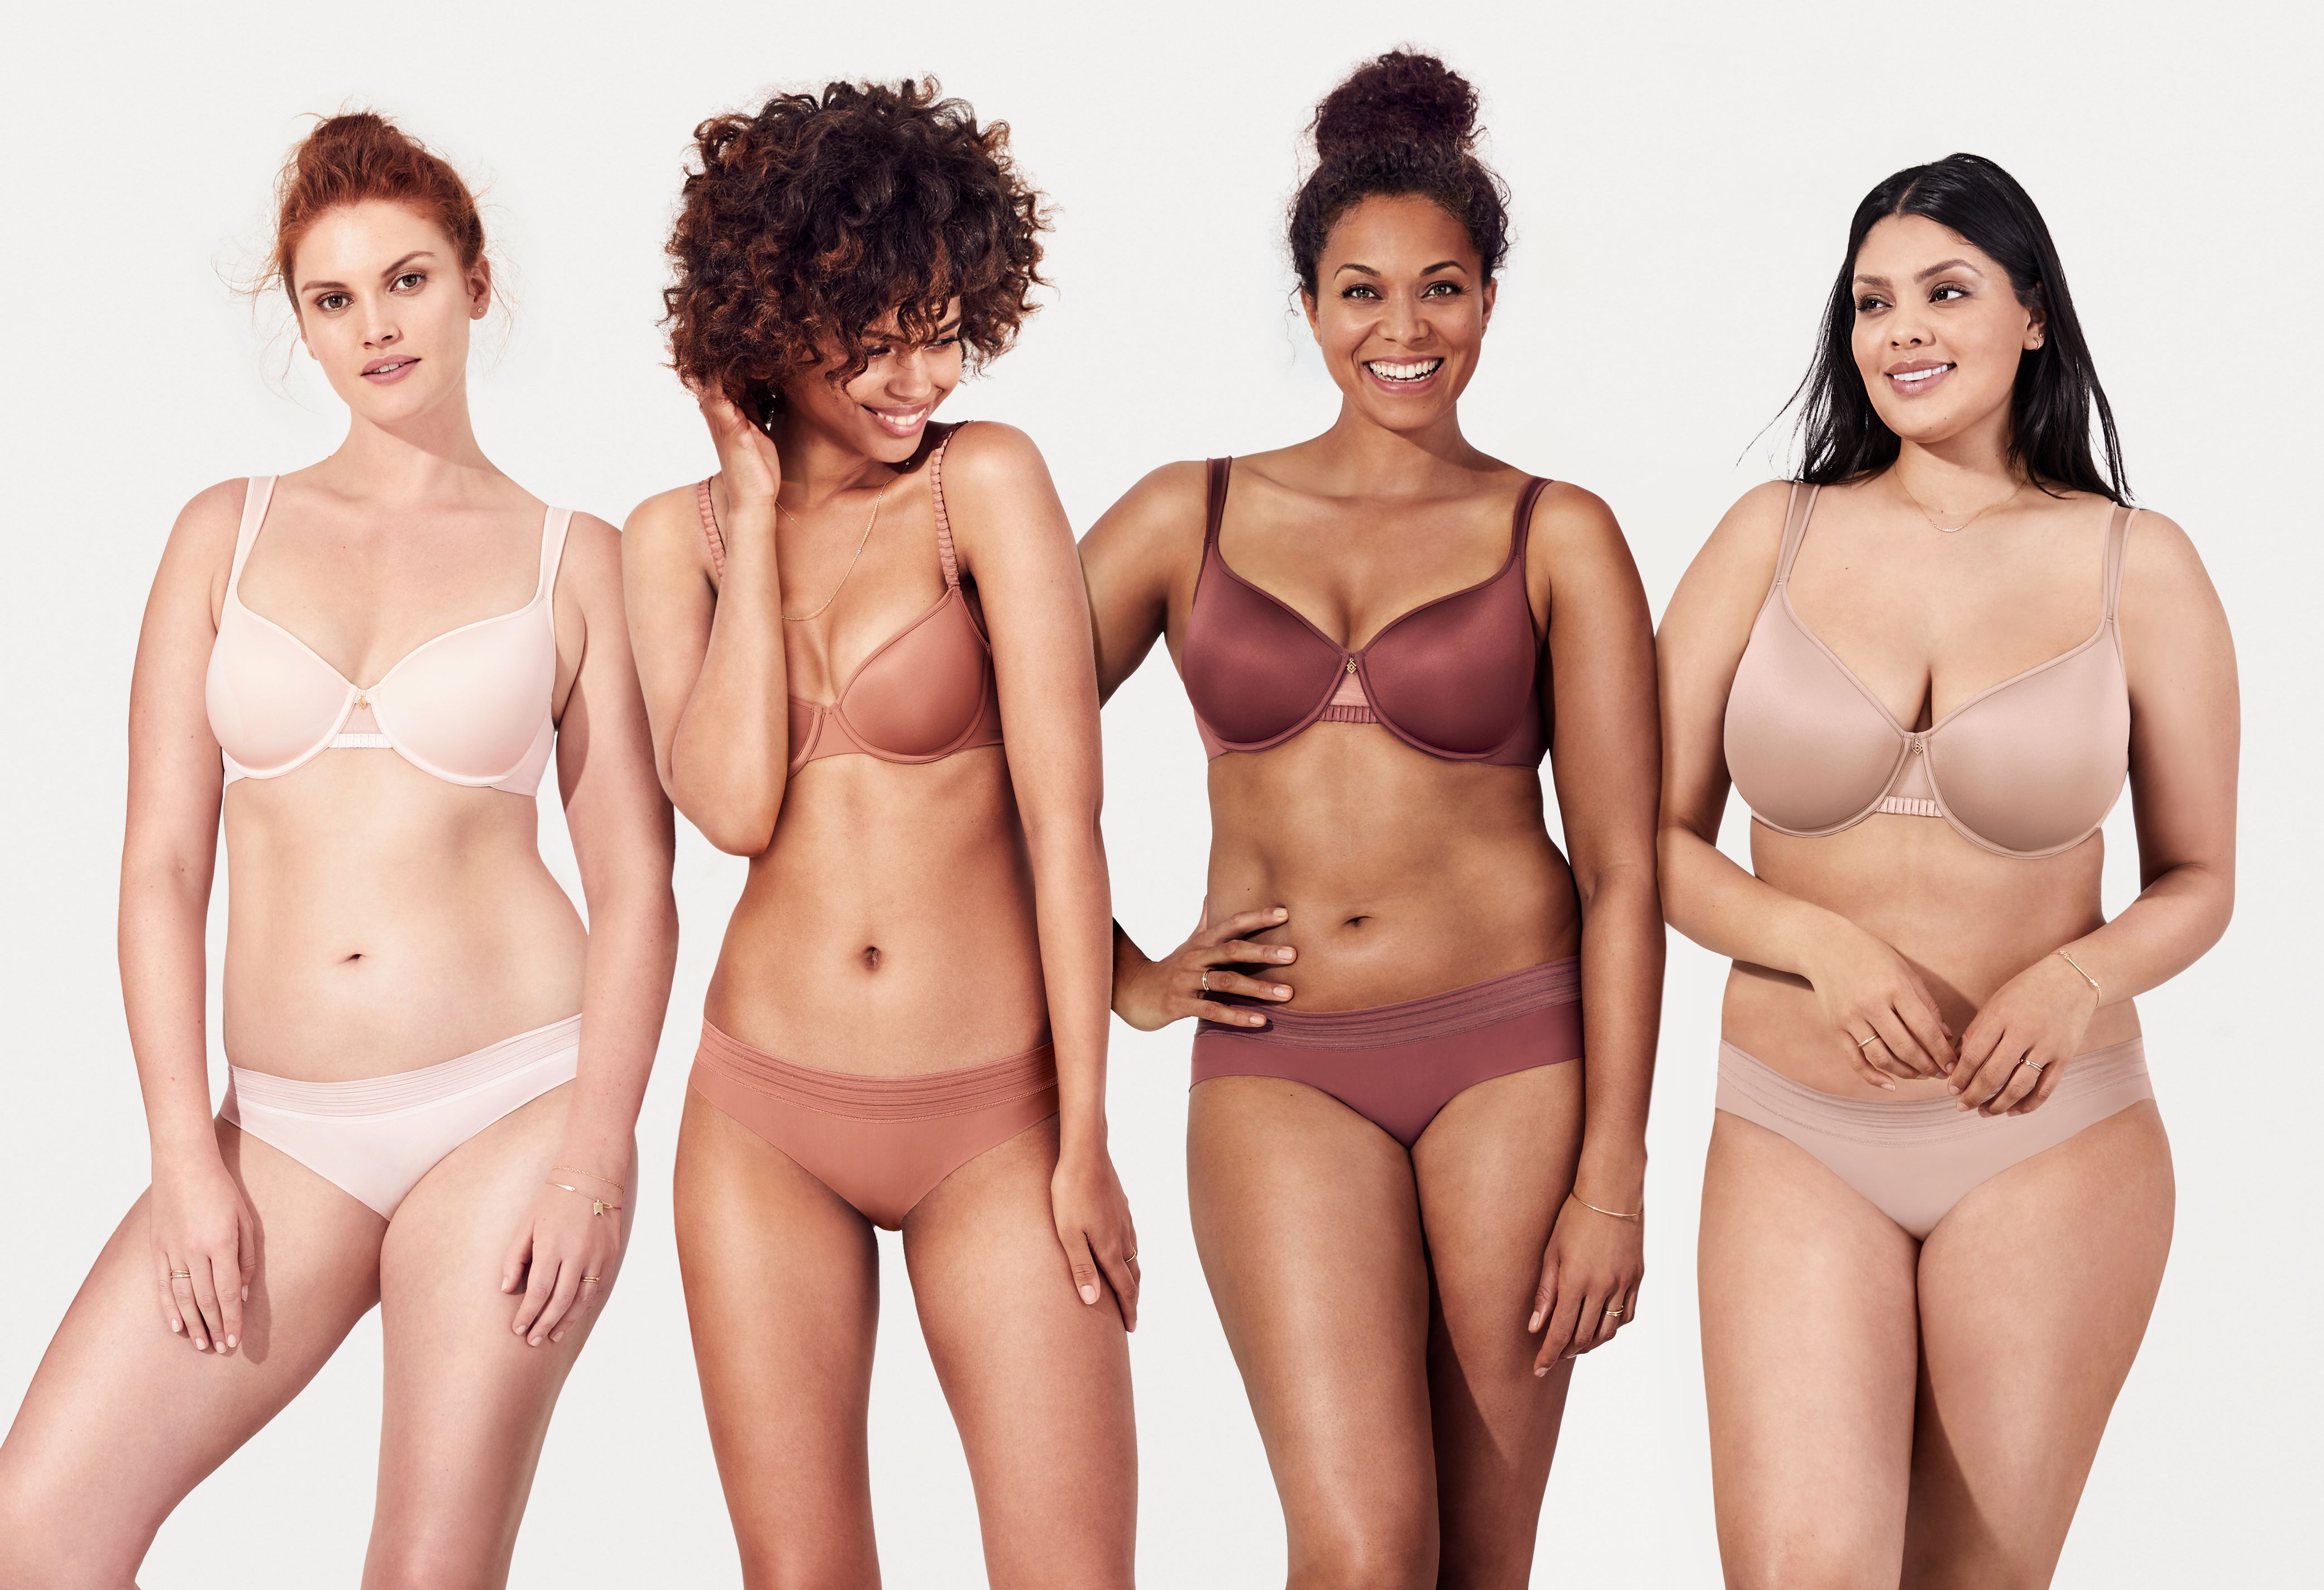 ThirdLove Just Introduced 24 New Sizes So We Can Finally Find a Bra That Fits